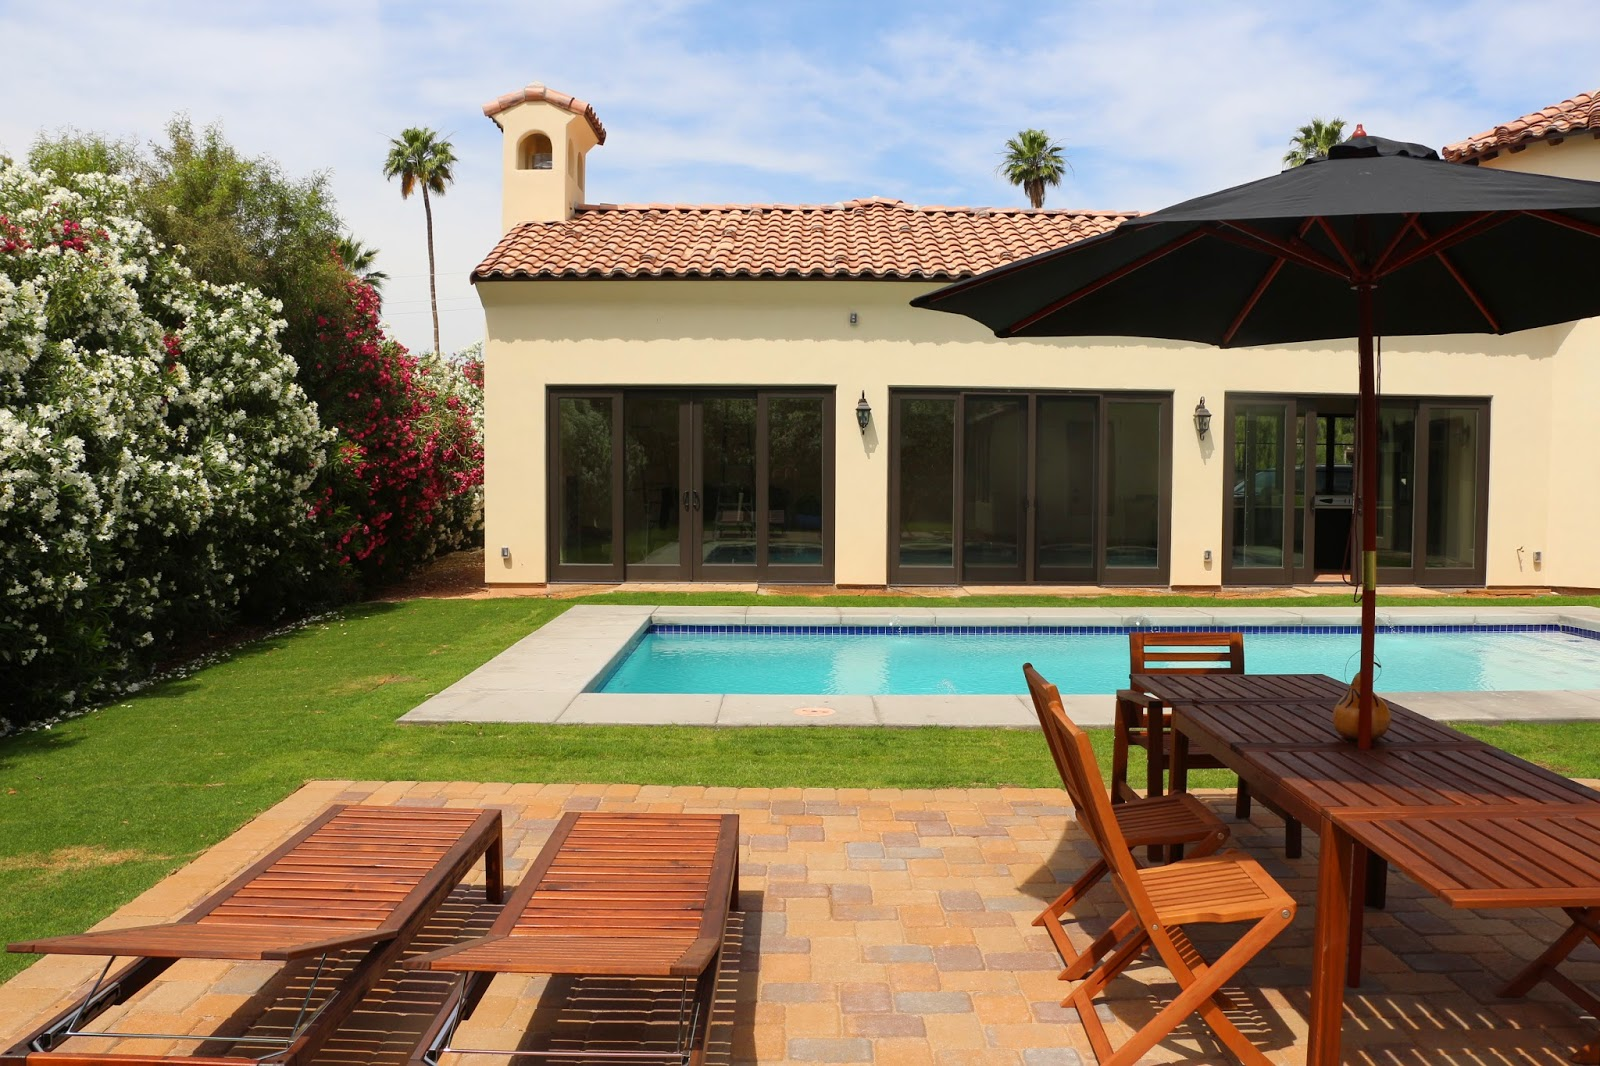 spanish colonial house and pool, ikea patio furniture, ikea chaise lounge,